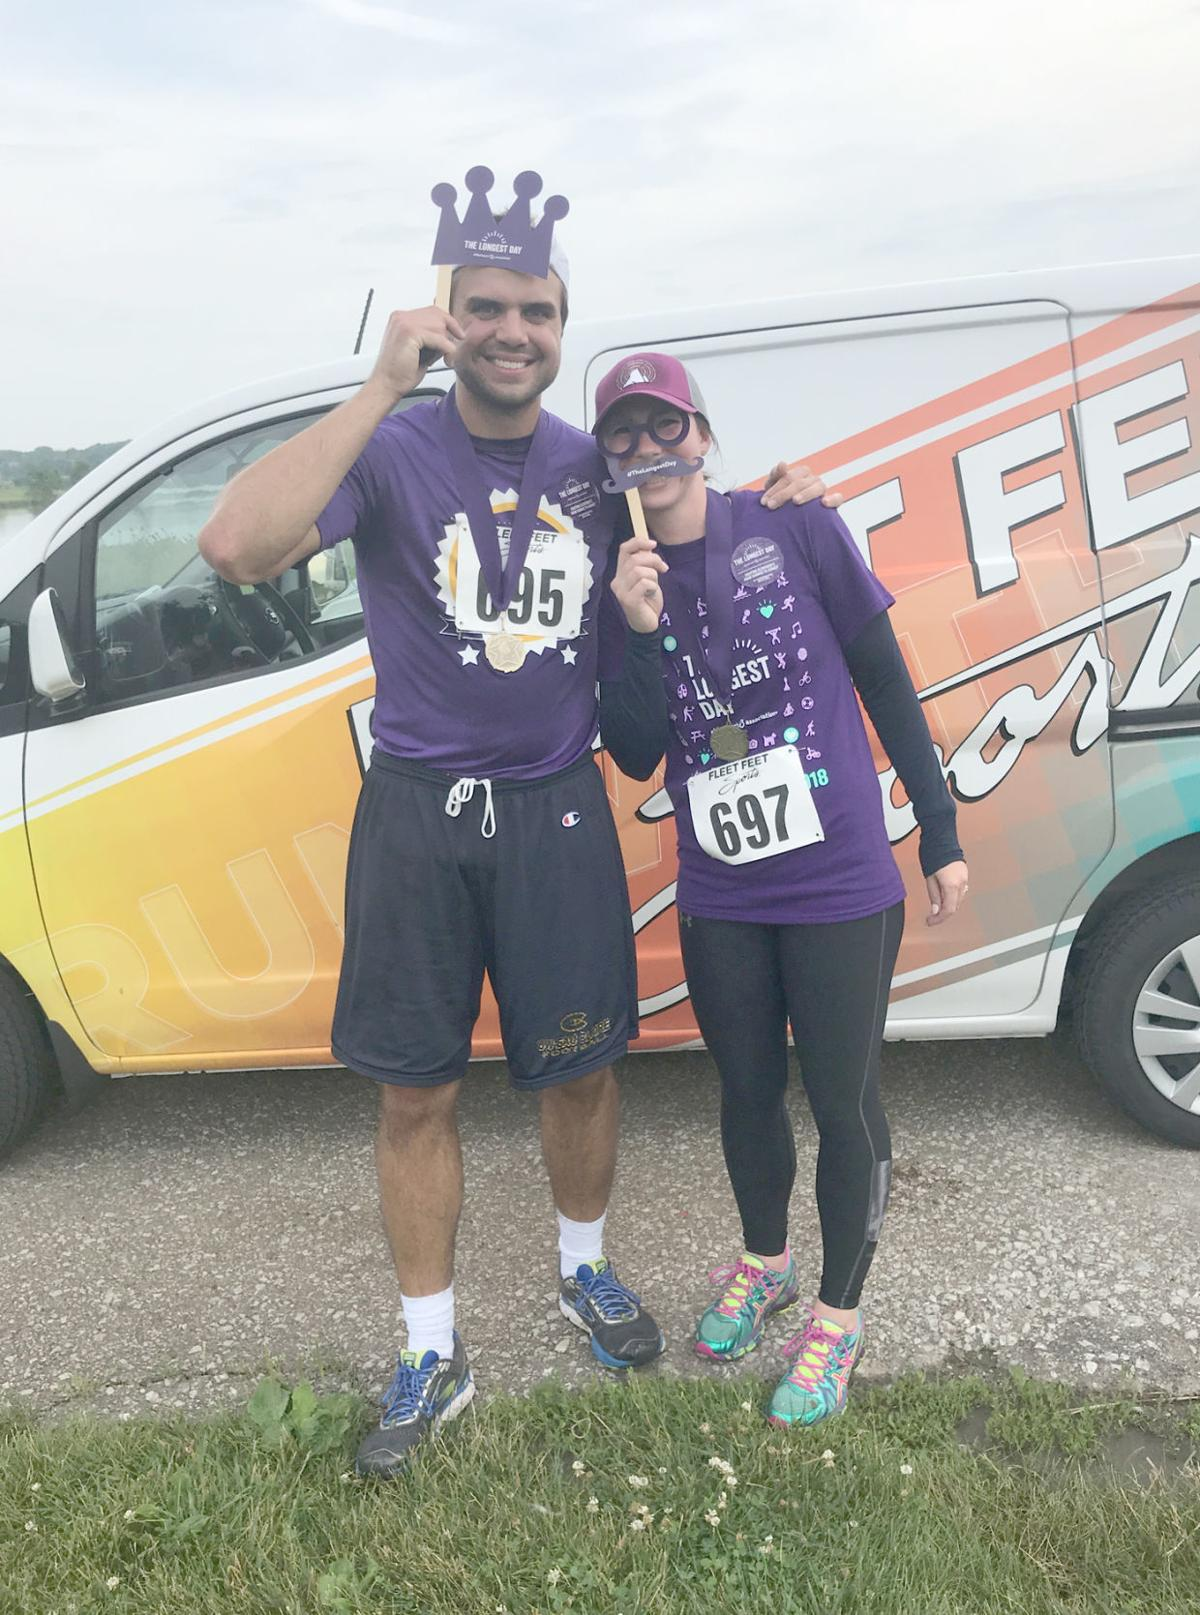 Couple at fundraising 5K run